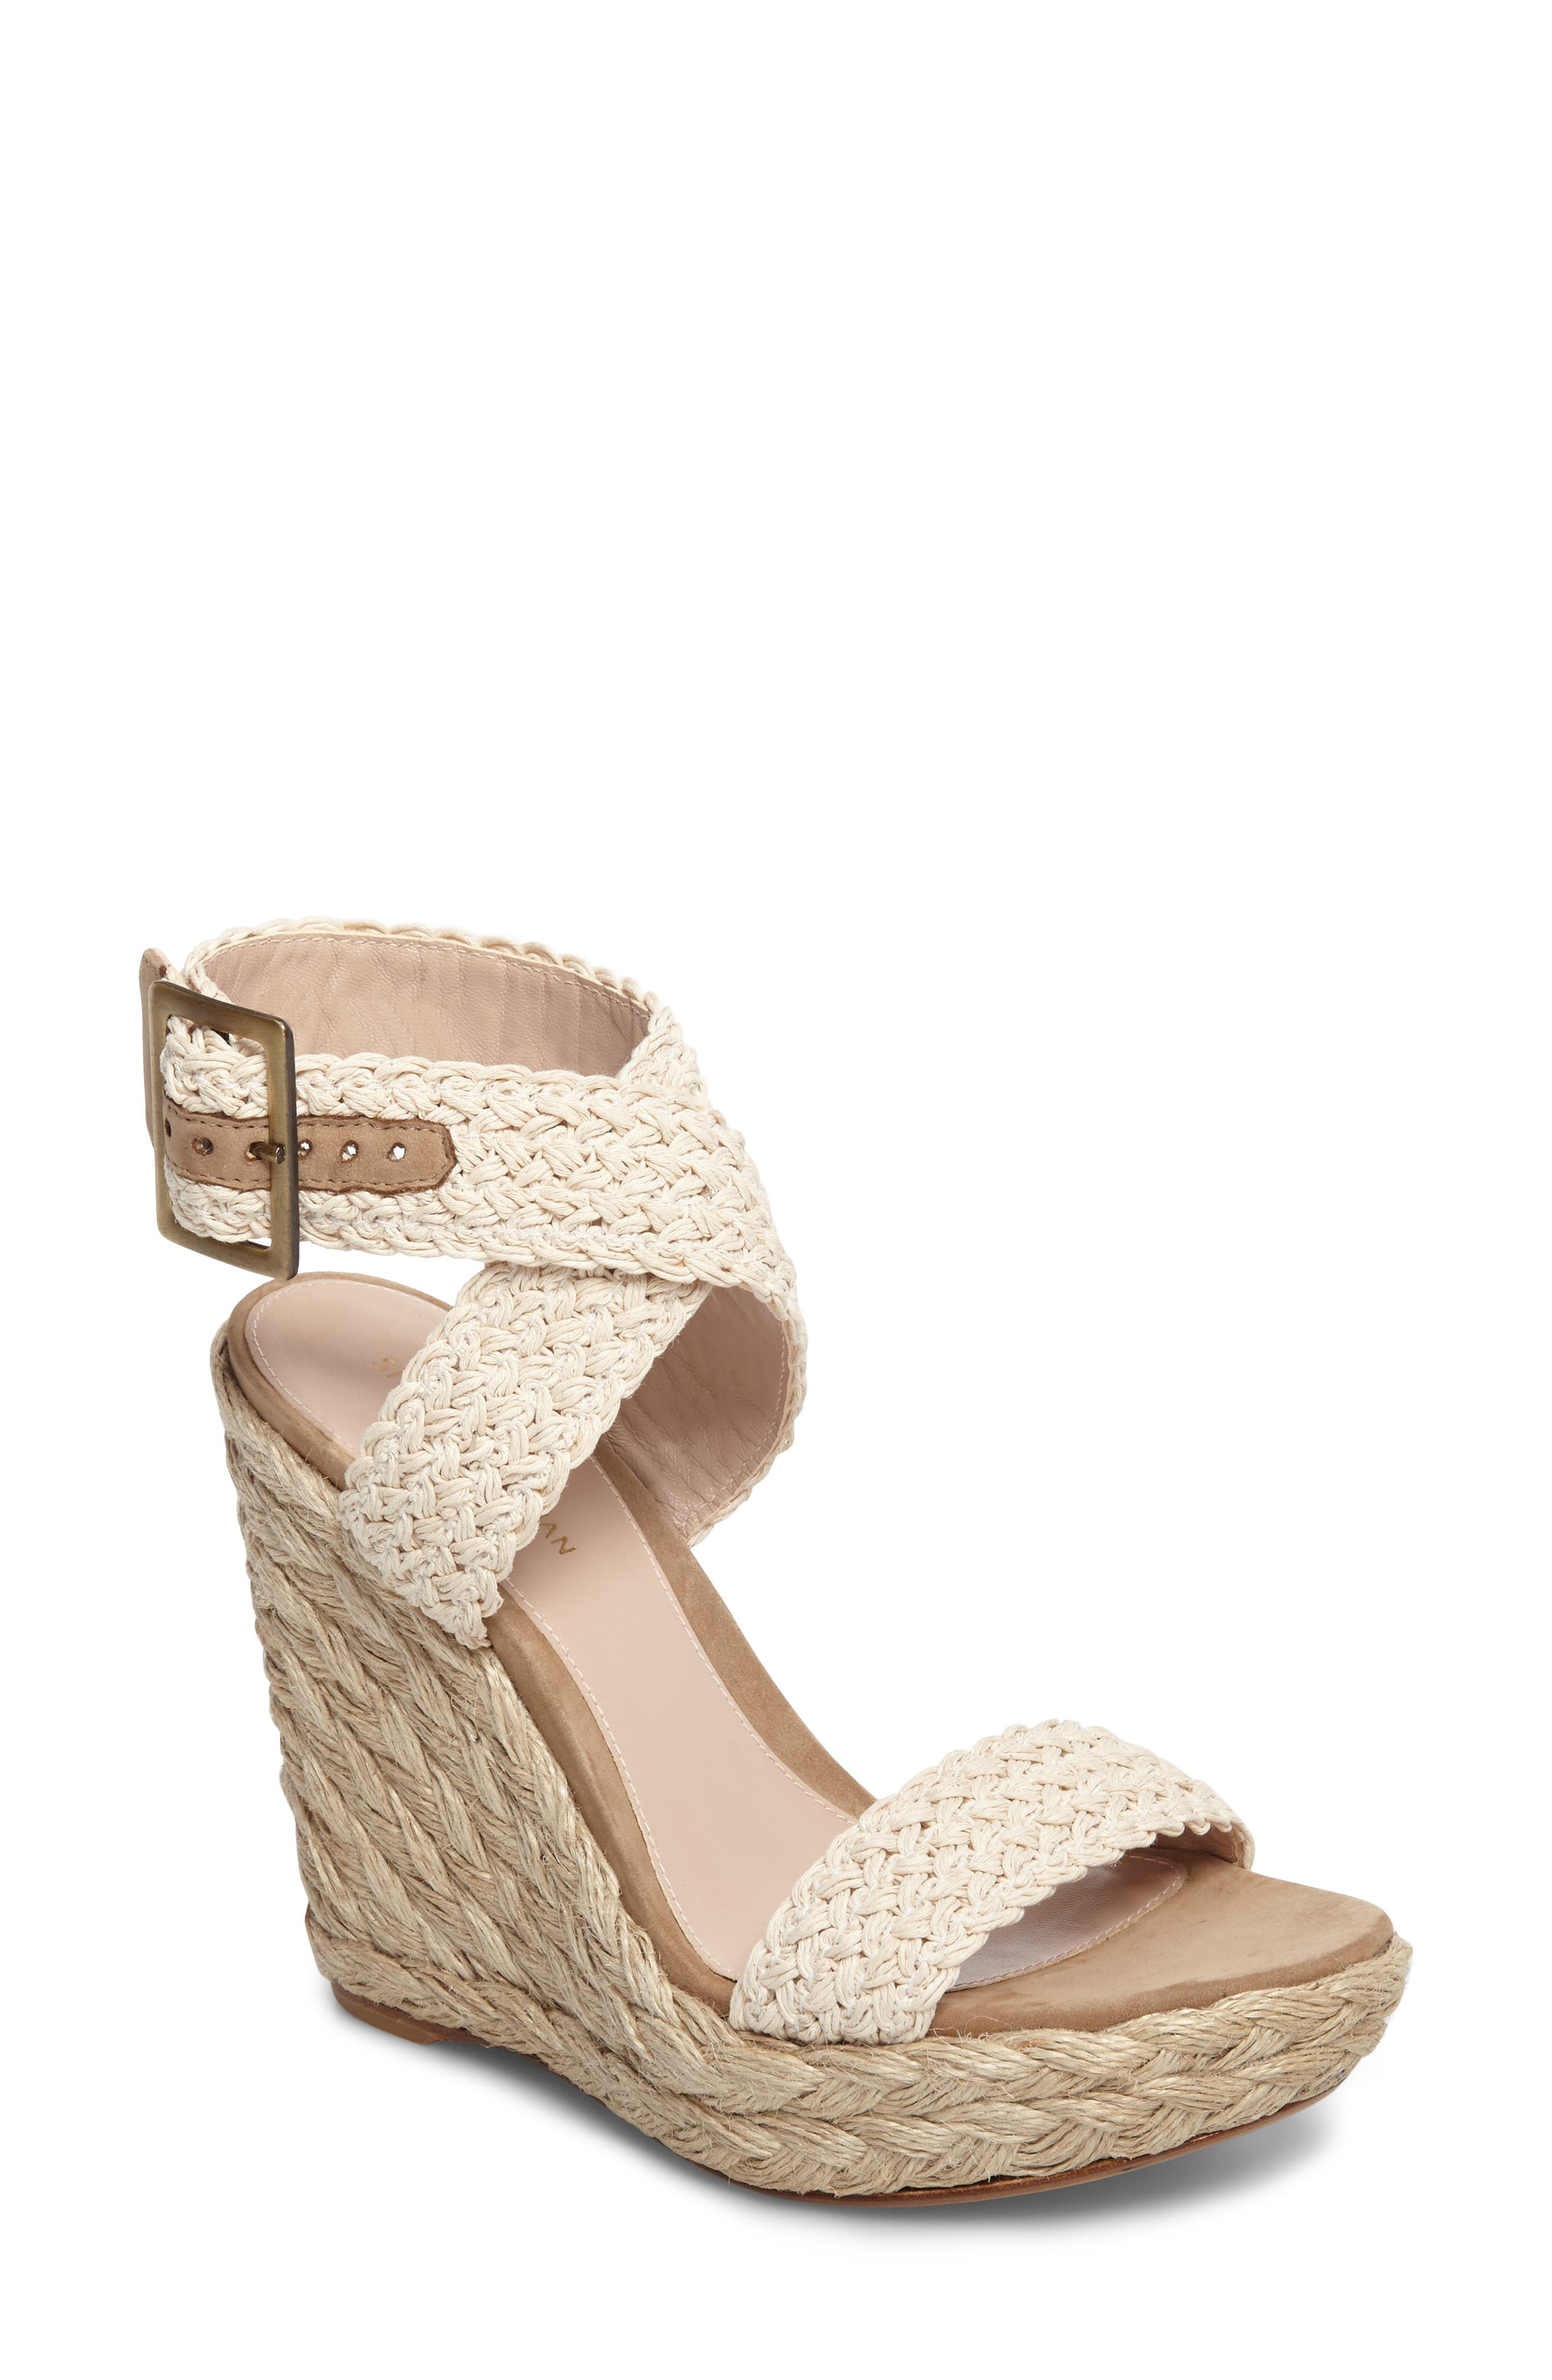 Adventure Wedge Sandal,                         Main,                         color, 250